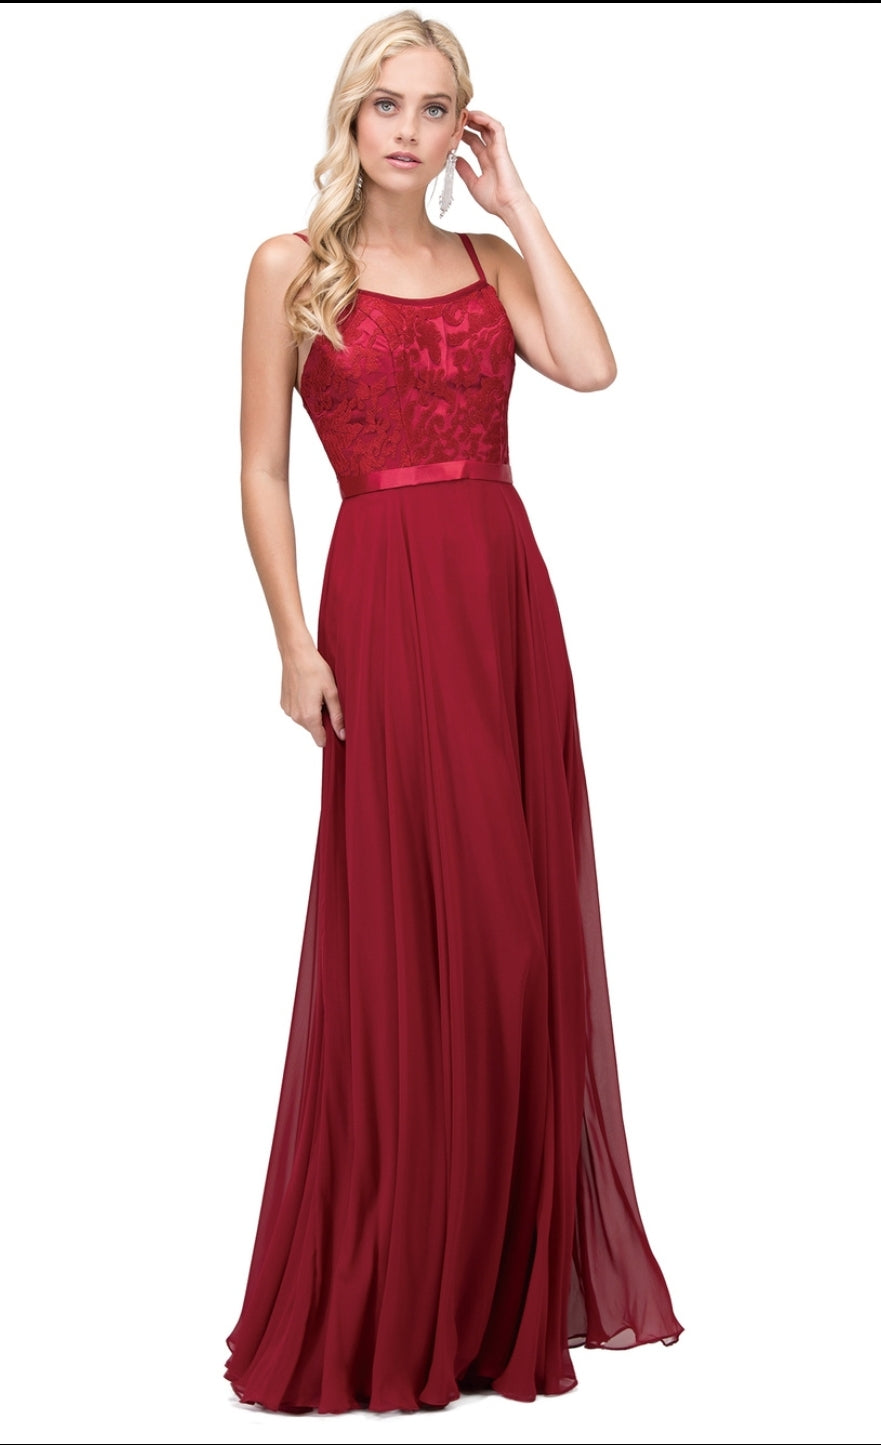 9914 Prom Dress Size 2X Burgundy